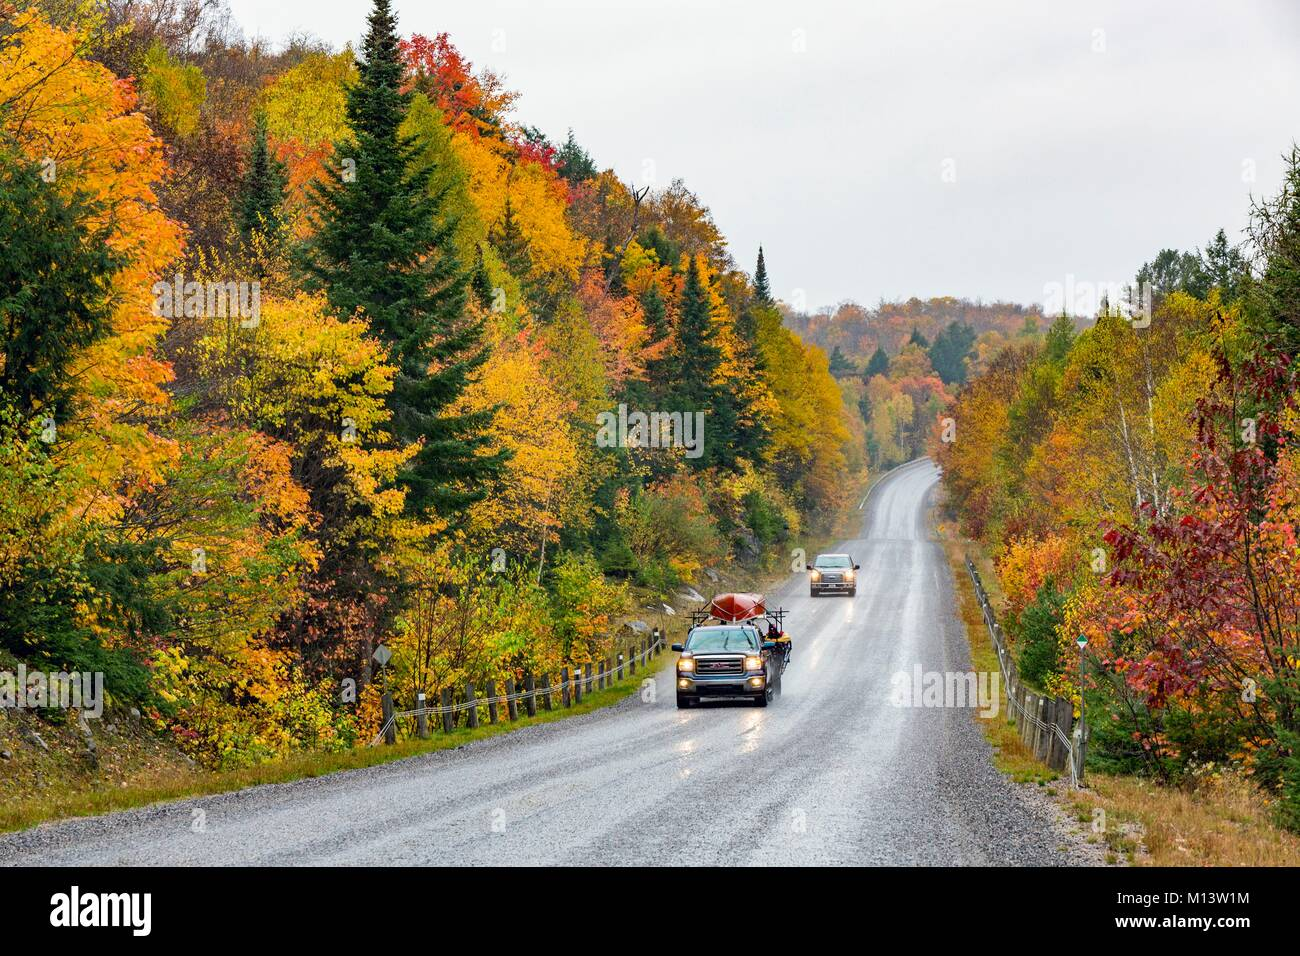 Canada, Province of Ontario, Mattawa to Témiscamingue Road, Alexander Lake Forest Provincial Park - Stock Image